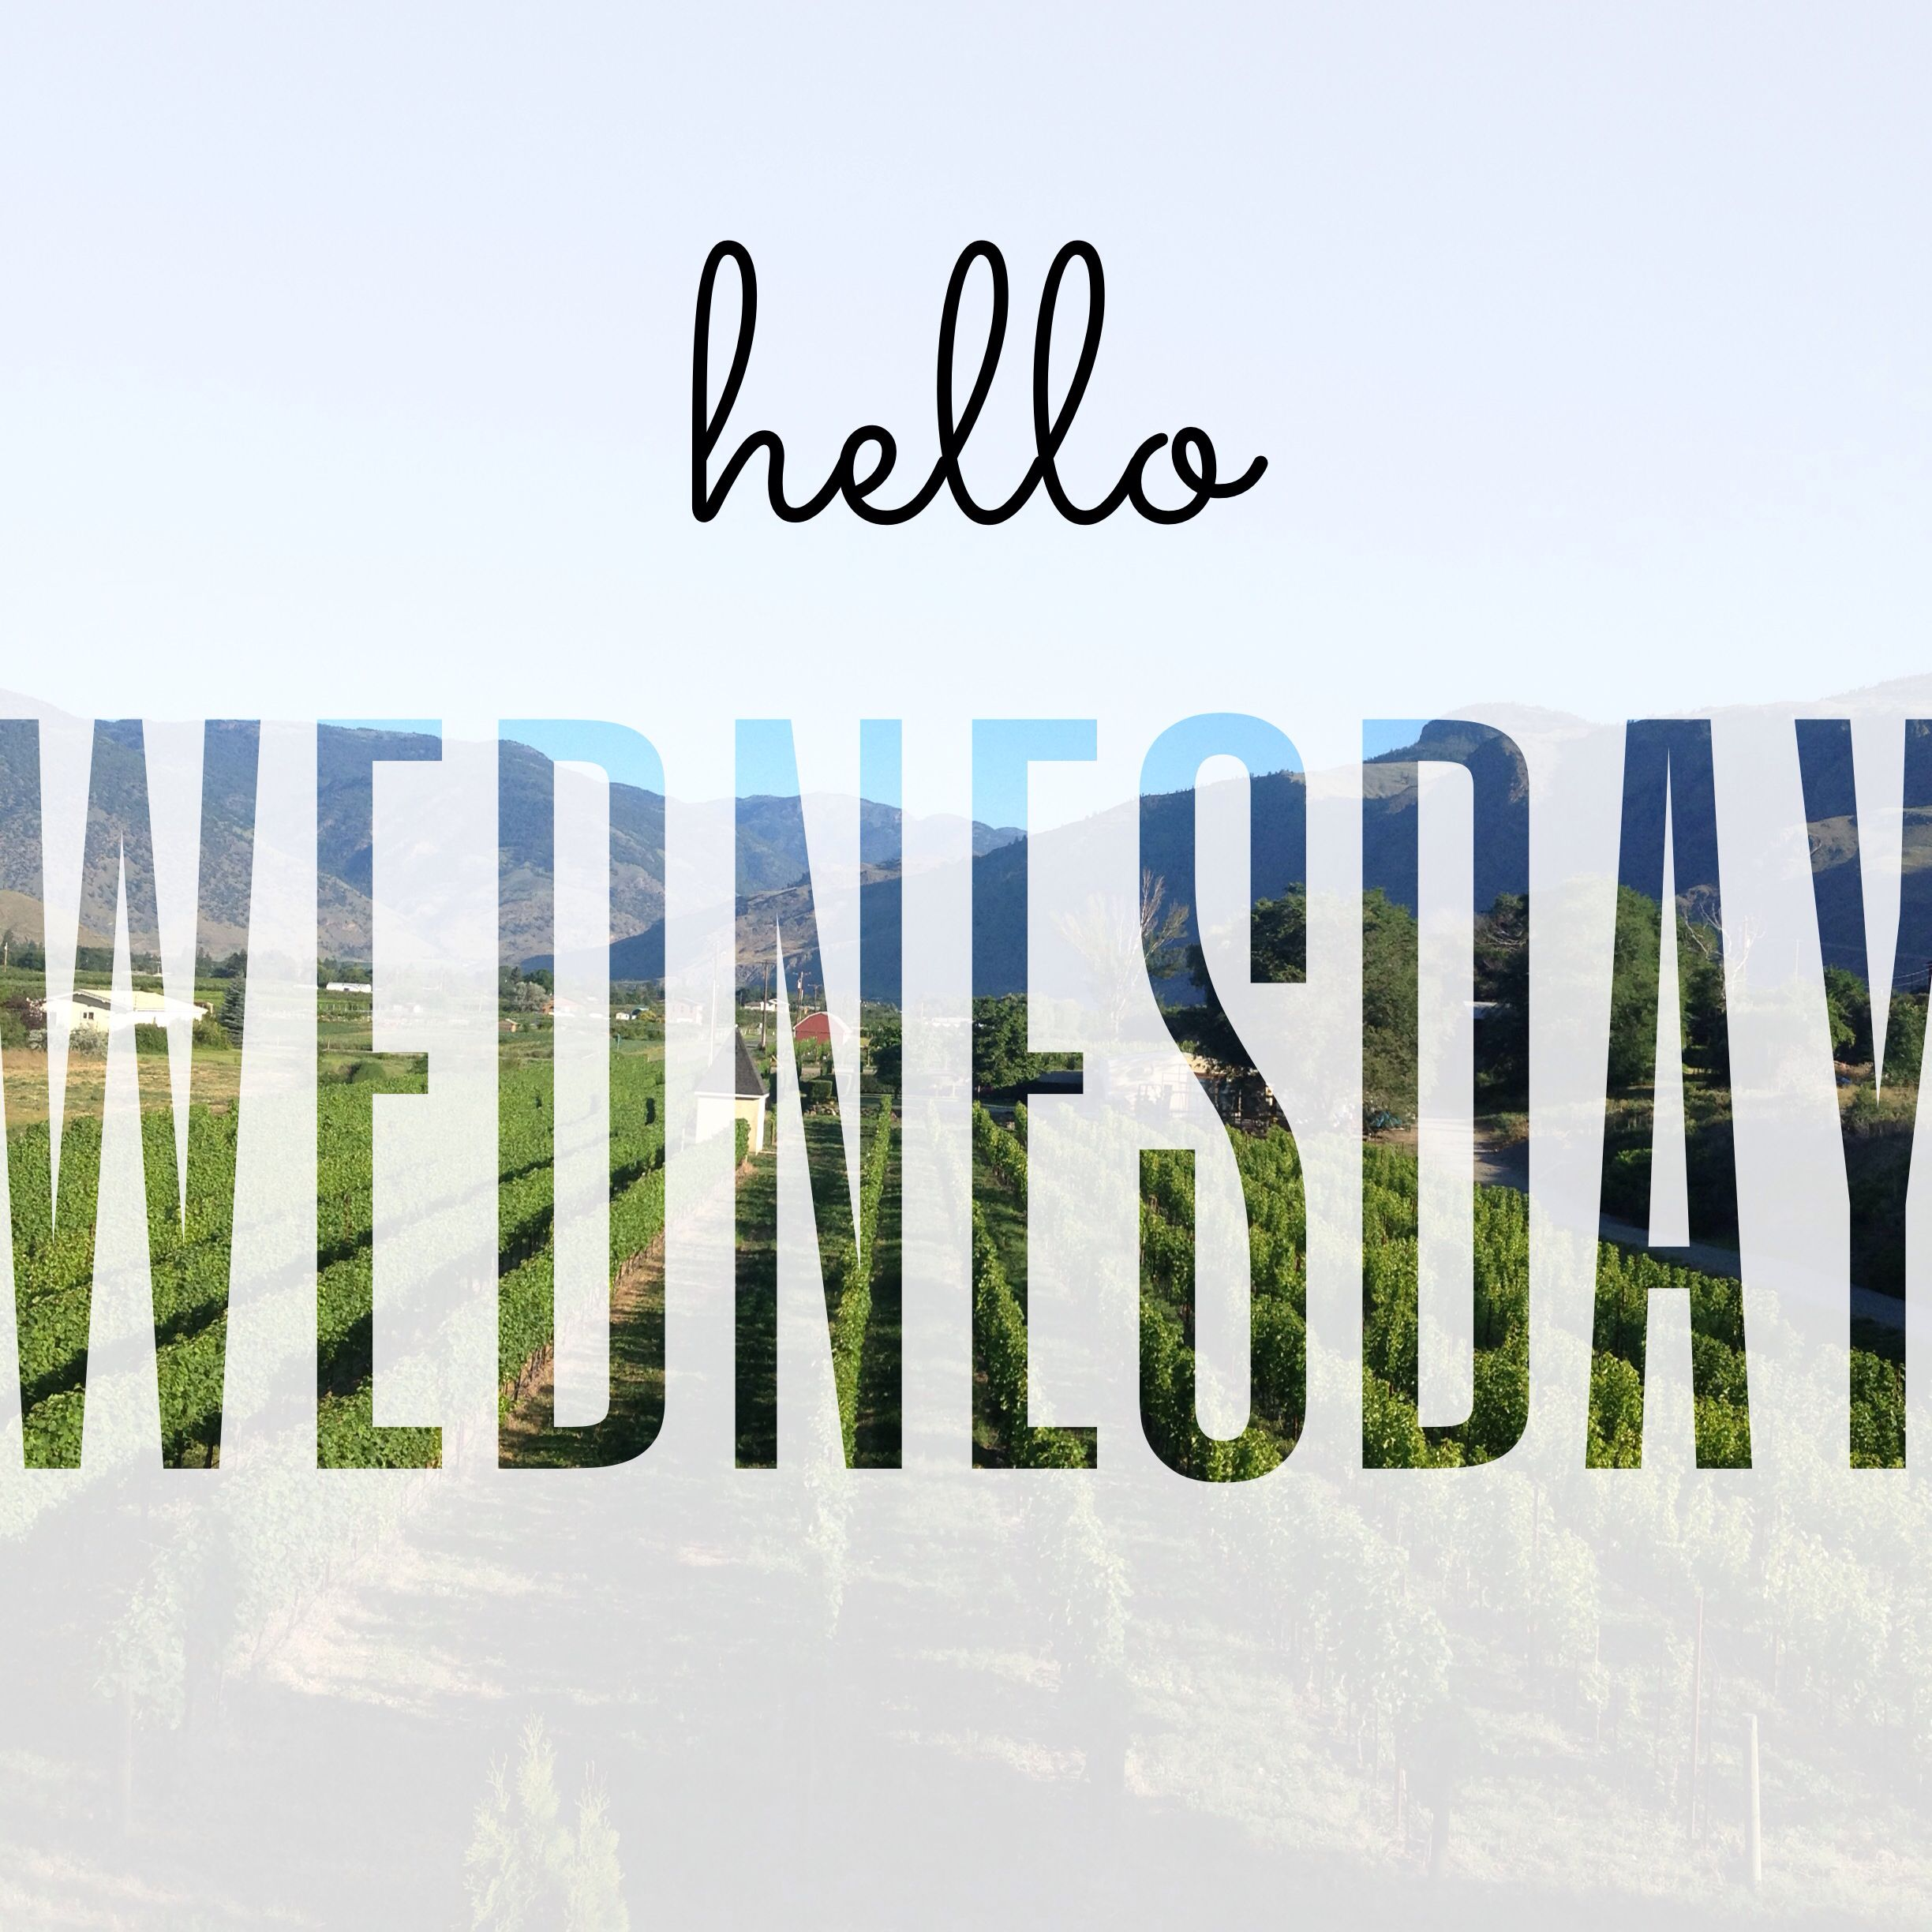 Hello monday have a great week love image collections - Cleaning Up The Back Yard And Getting Everything Ready For This Weekend Walk With Alaina And Paxton Softball Game This Evening Should Be A Good Day